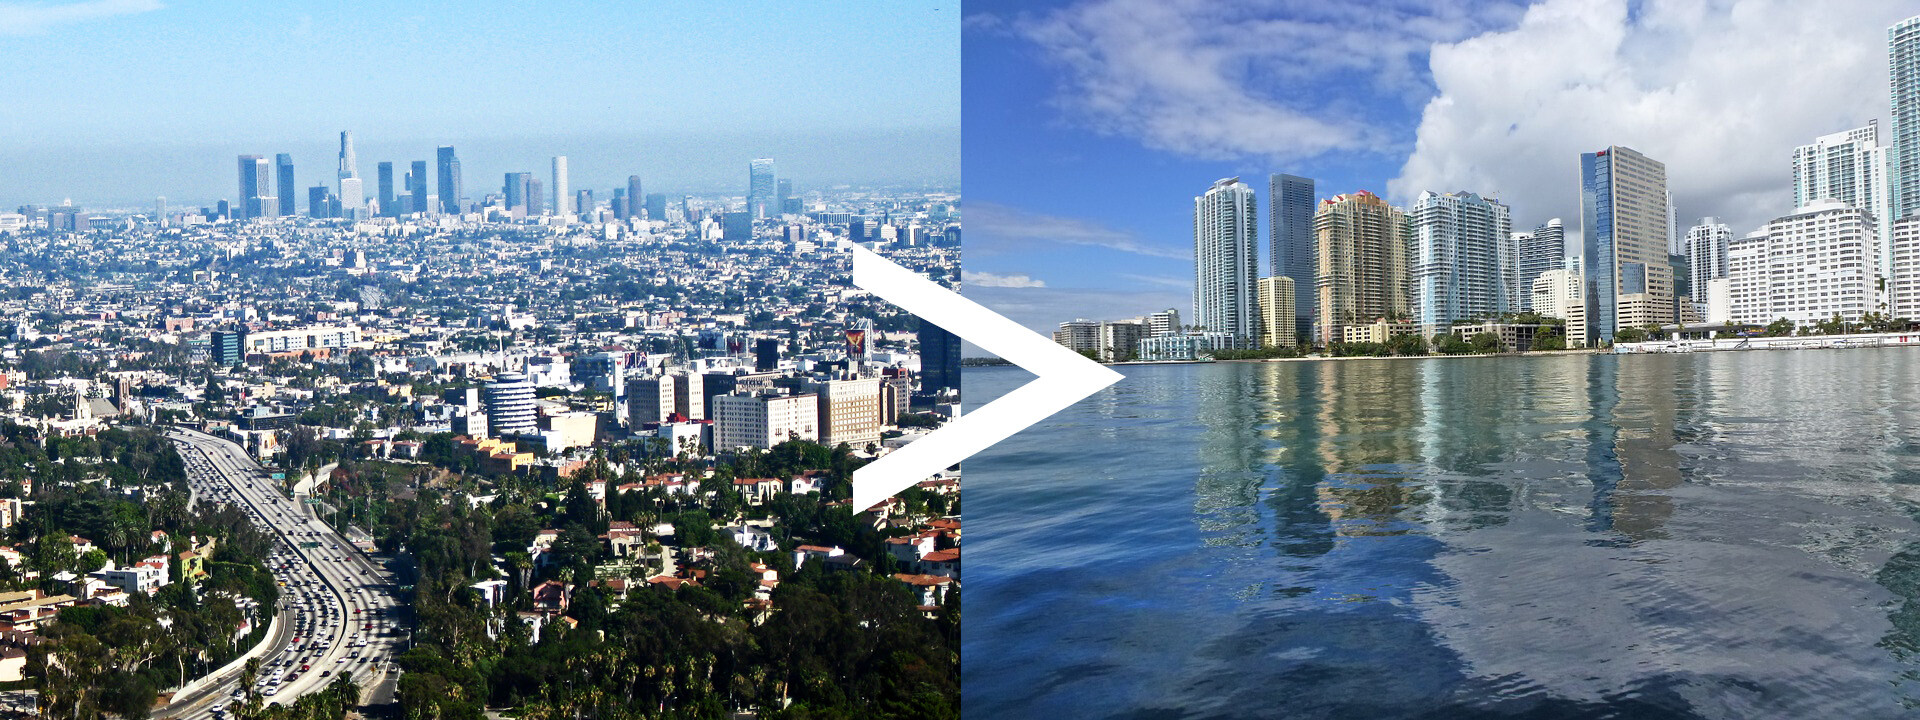 Miami florida to new york city auto transport national for New york city to los angeles